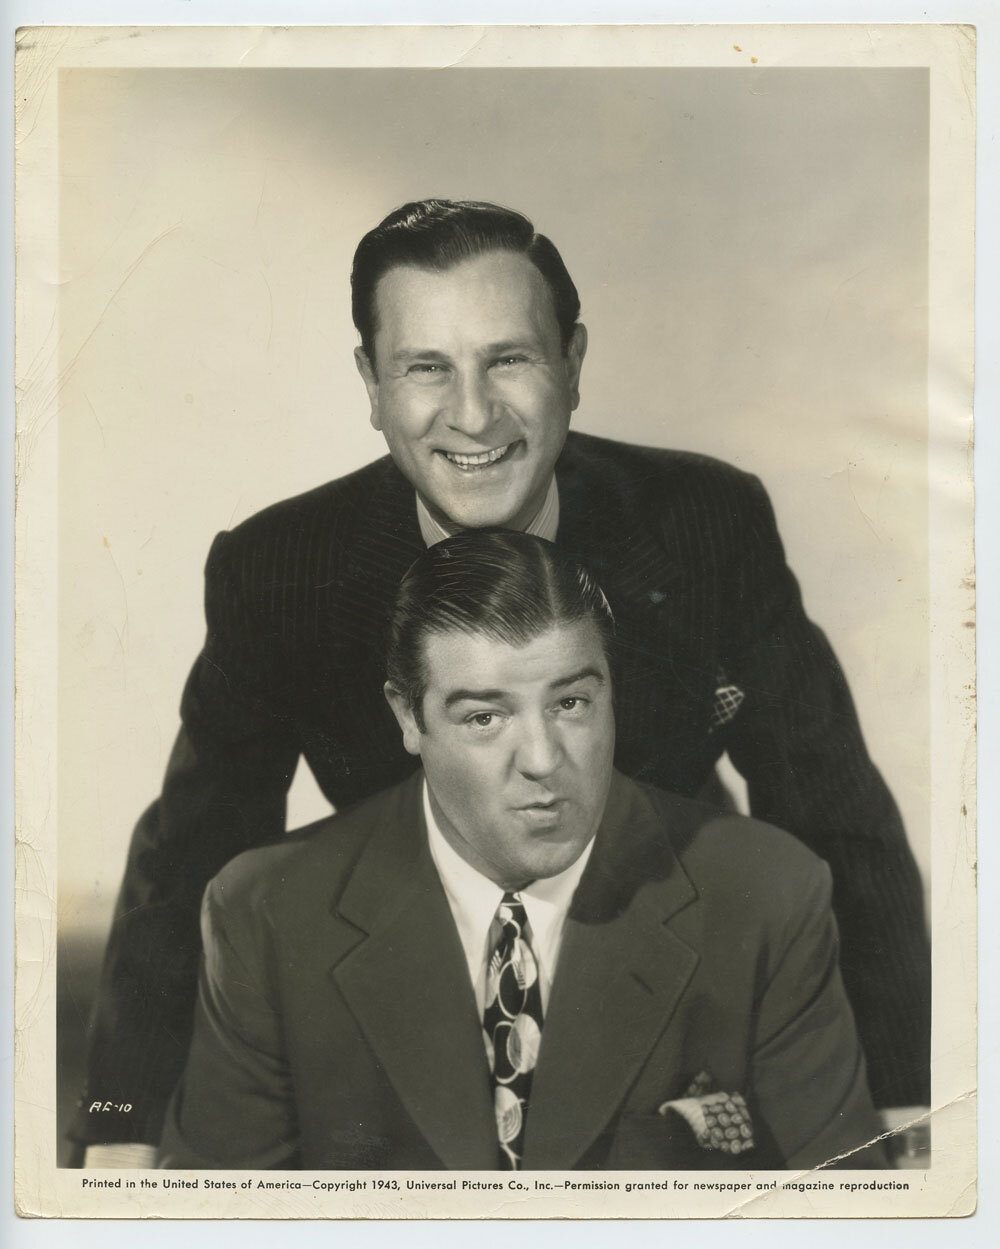 Abbot and Costello Photograph 1943 Universal Pictures Publicity Original Vintage